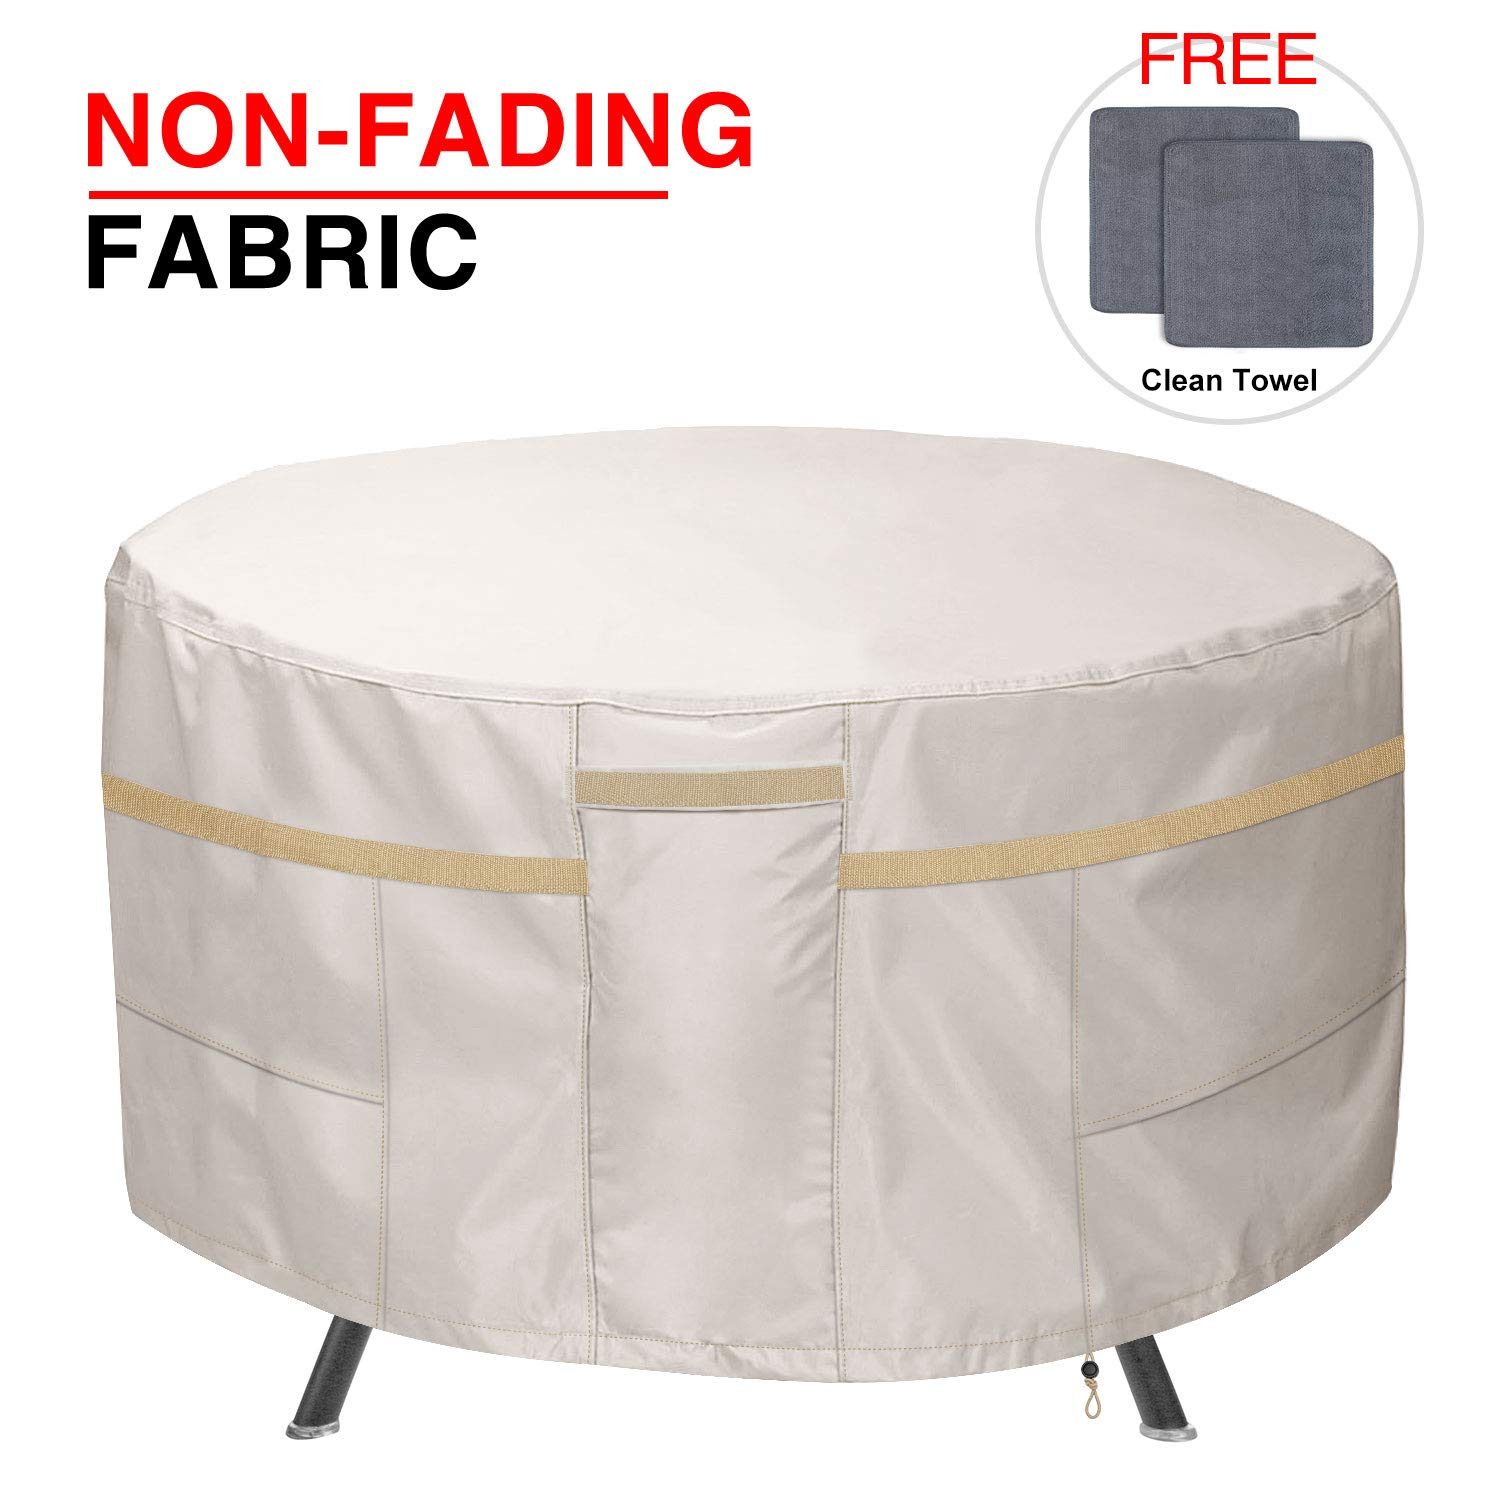 Patiassy 100% Waterproof Round Patio Table Set Cover - Outdoor Furniture Cover Heavy Duty 3 Layers - Fits Table Chairs 52 inch Dia - Free 2 PCS Towels, 5 Years Warranty